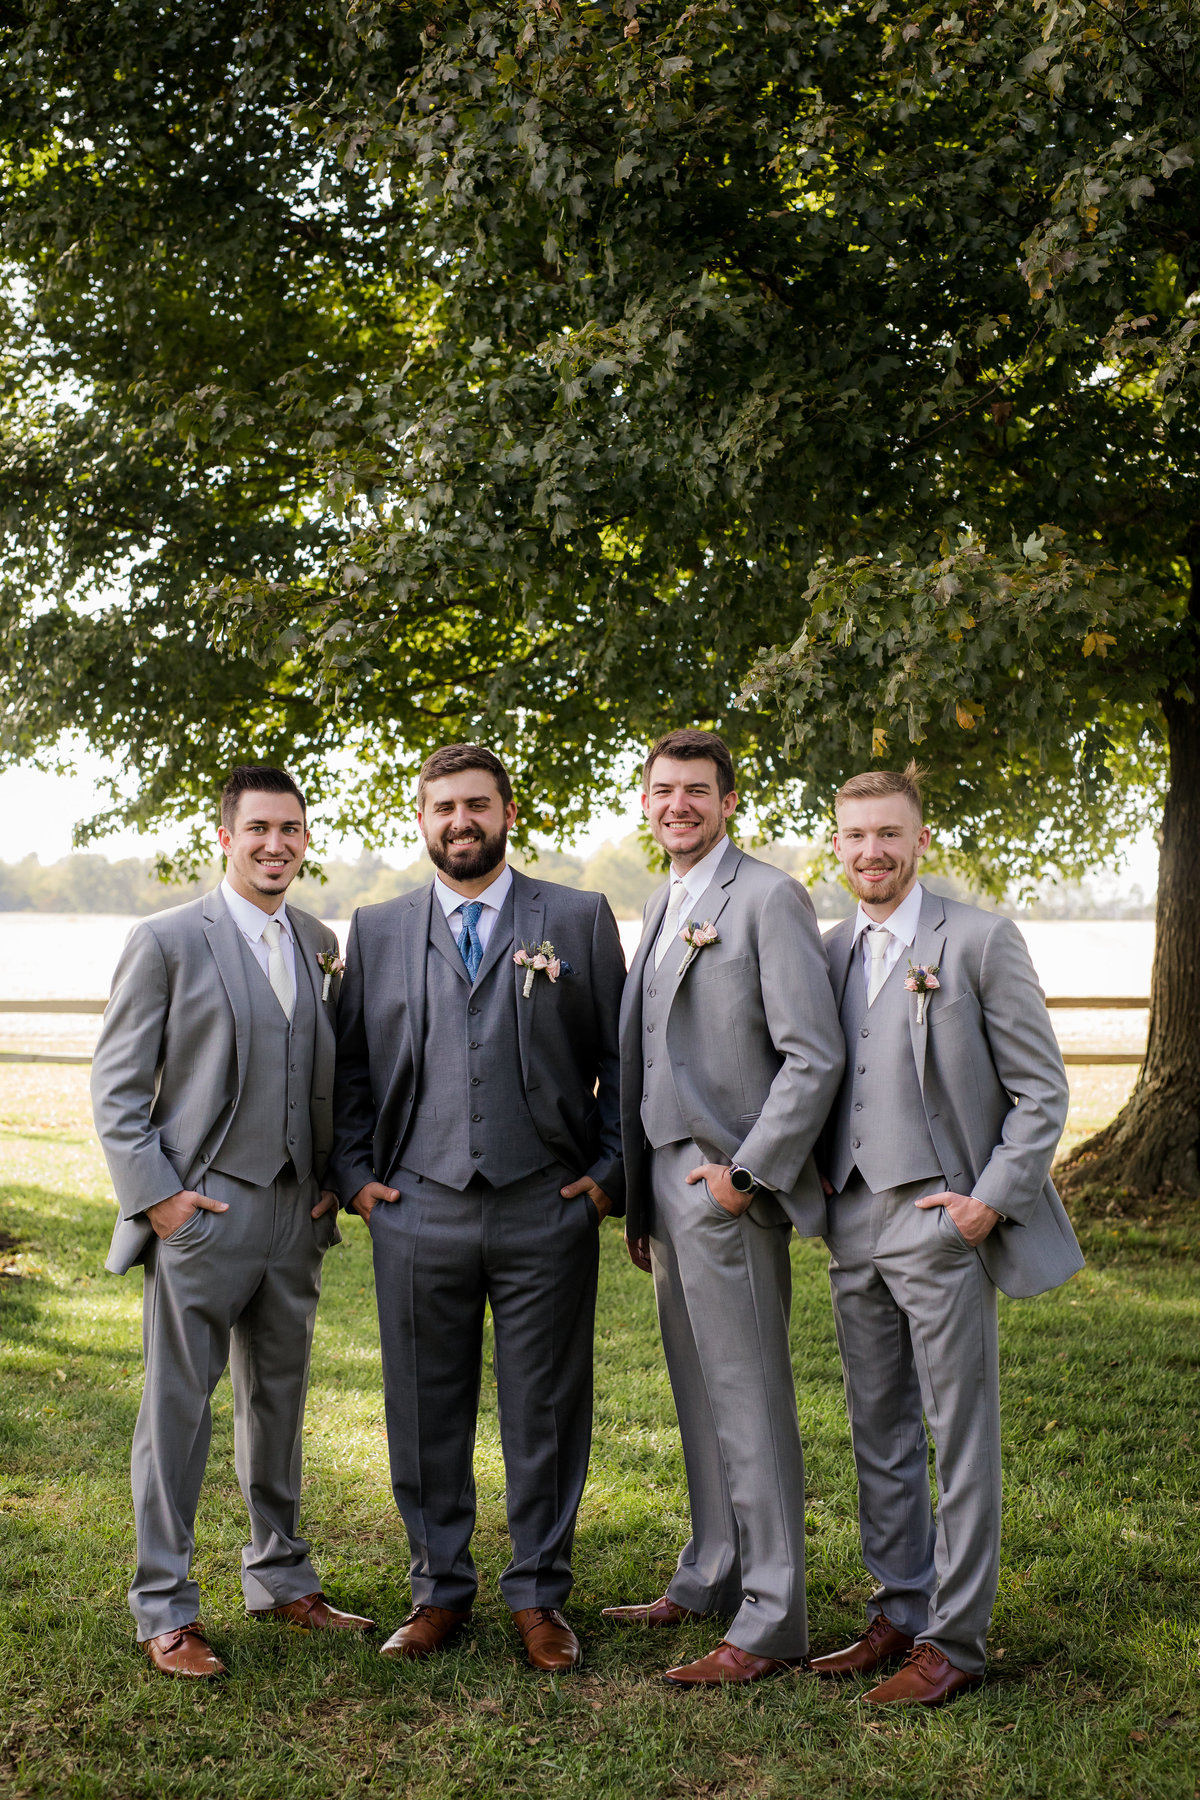 Clarksville Brides - Clarksville Engagements - Nashvilel Brides - Nashville Weddings - Clarksville Wedding Photographer - Clarksville Wedding Photographers - Lifestyle Engagement - illinois Bride - Southern Kentucky Weddings006